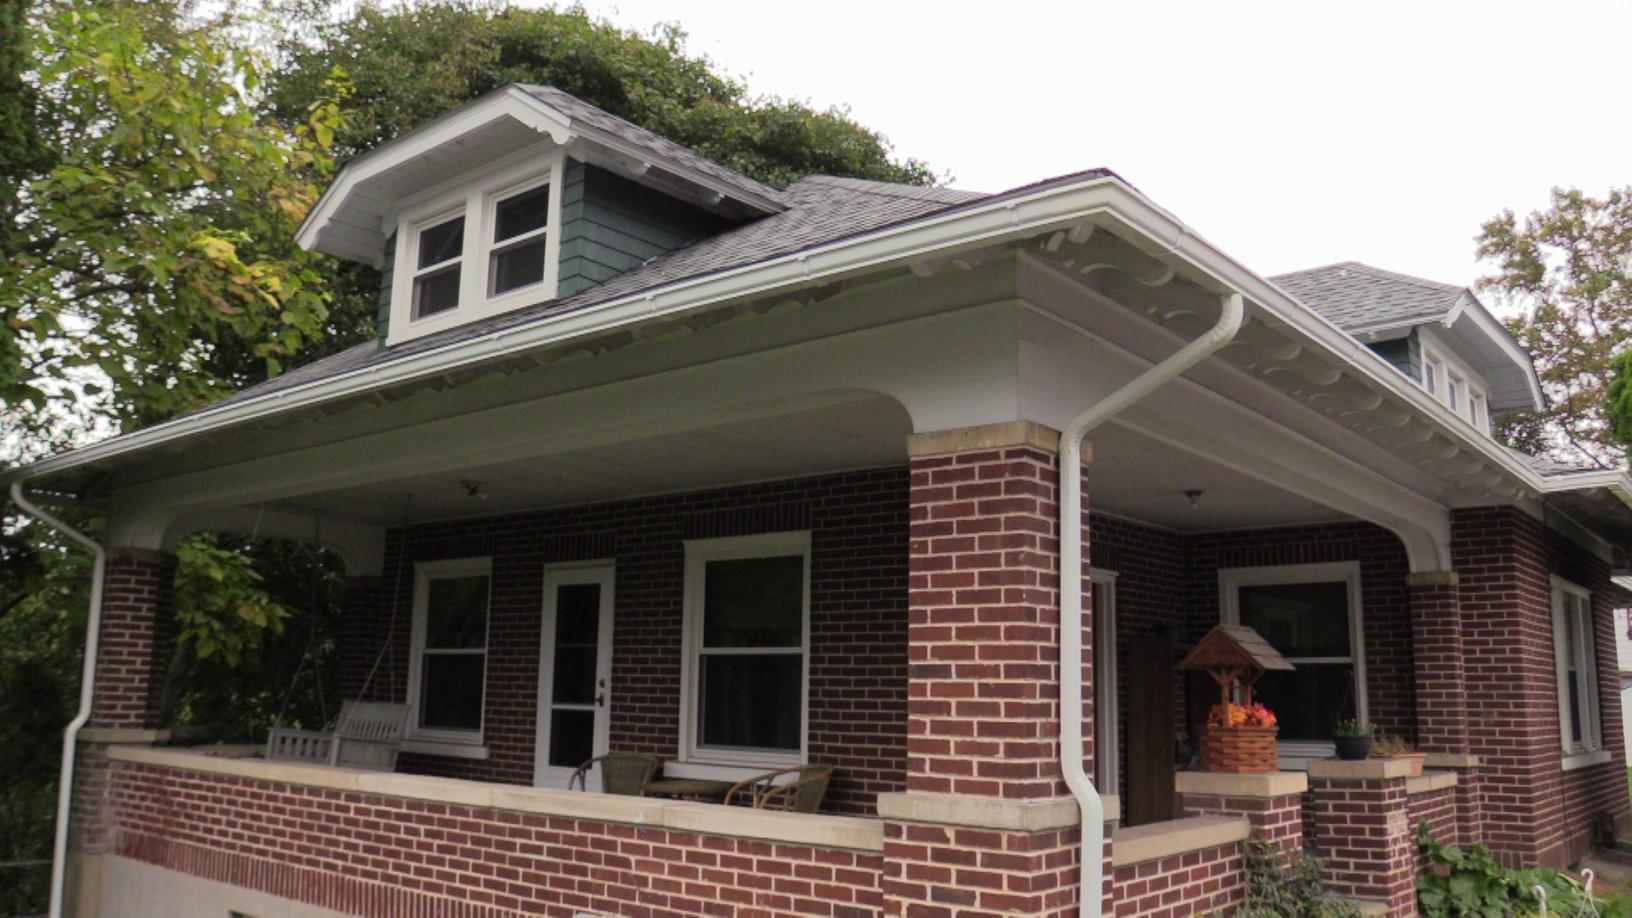 The House Has A New Look After Gutter and Roof Replacement